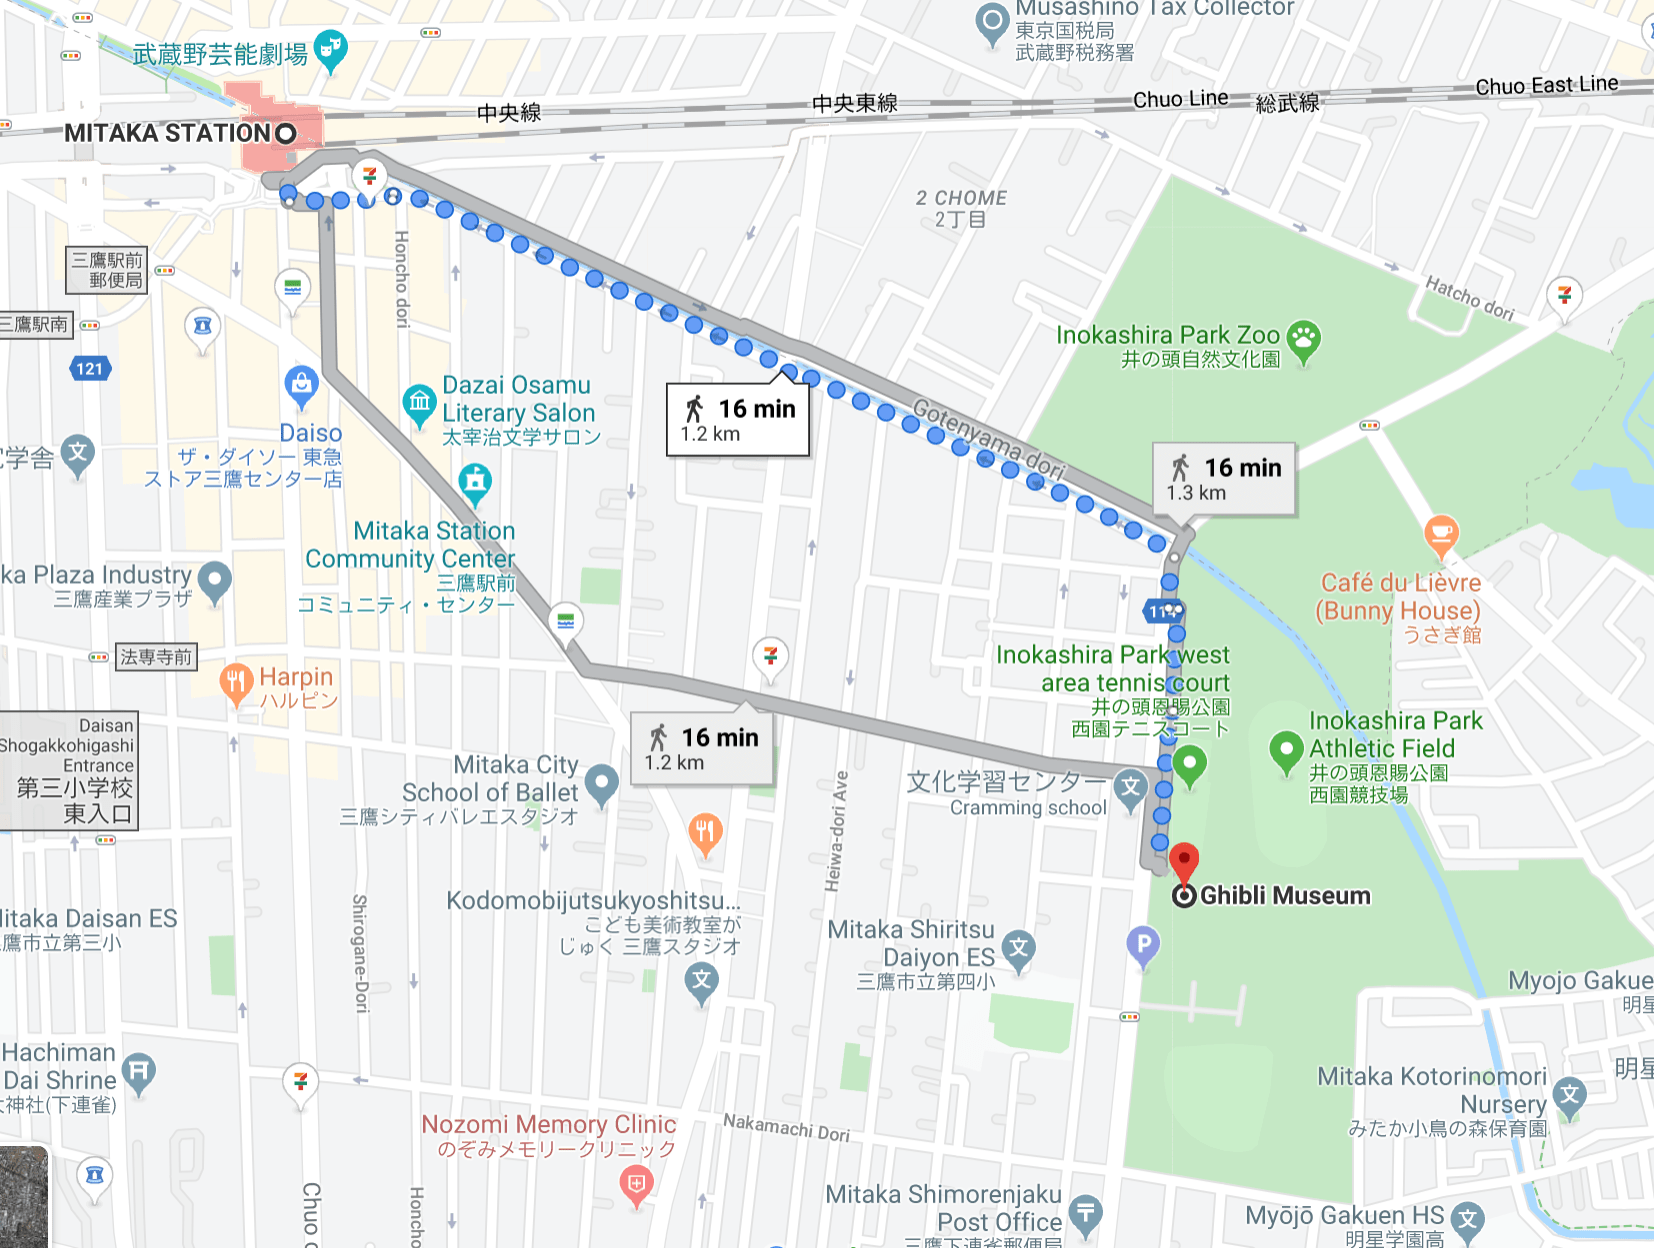 Direction from Mitaka Station to Ghibli Museum